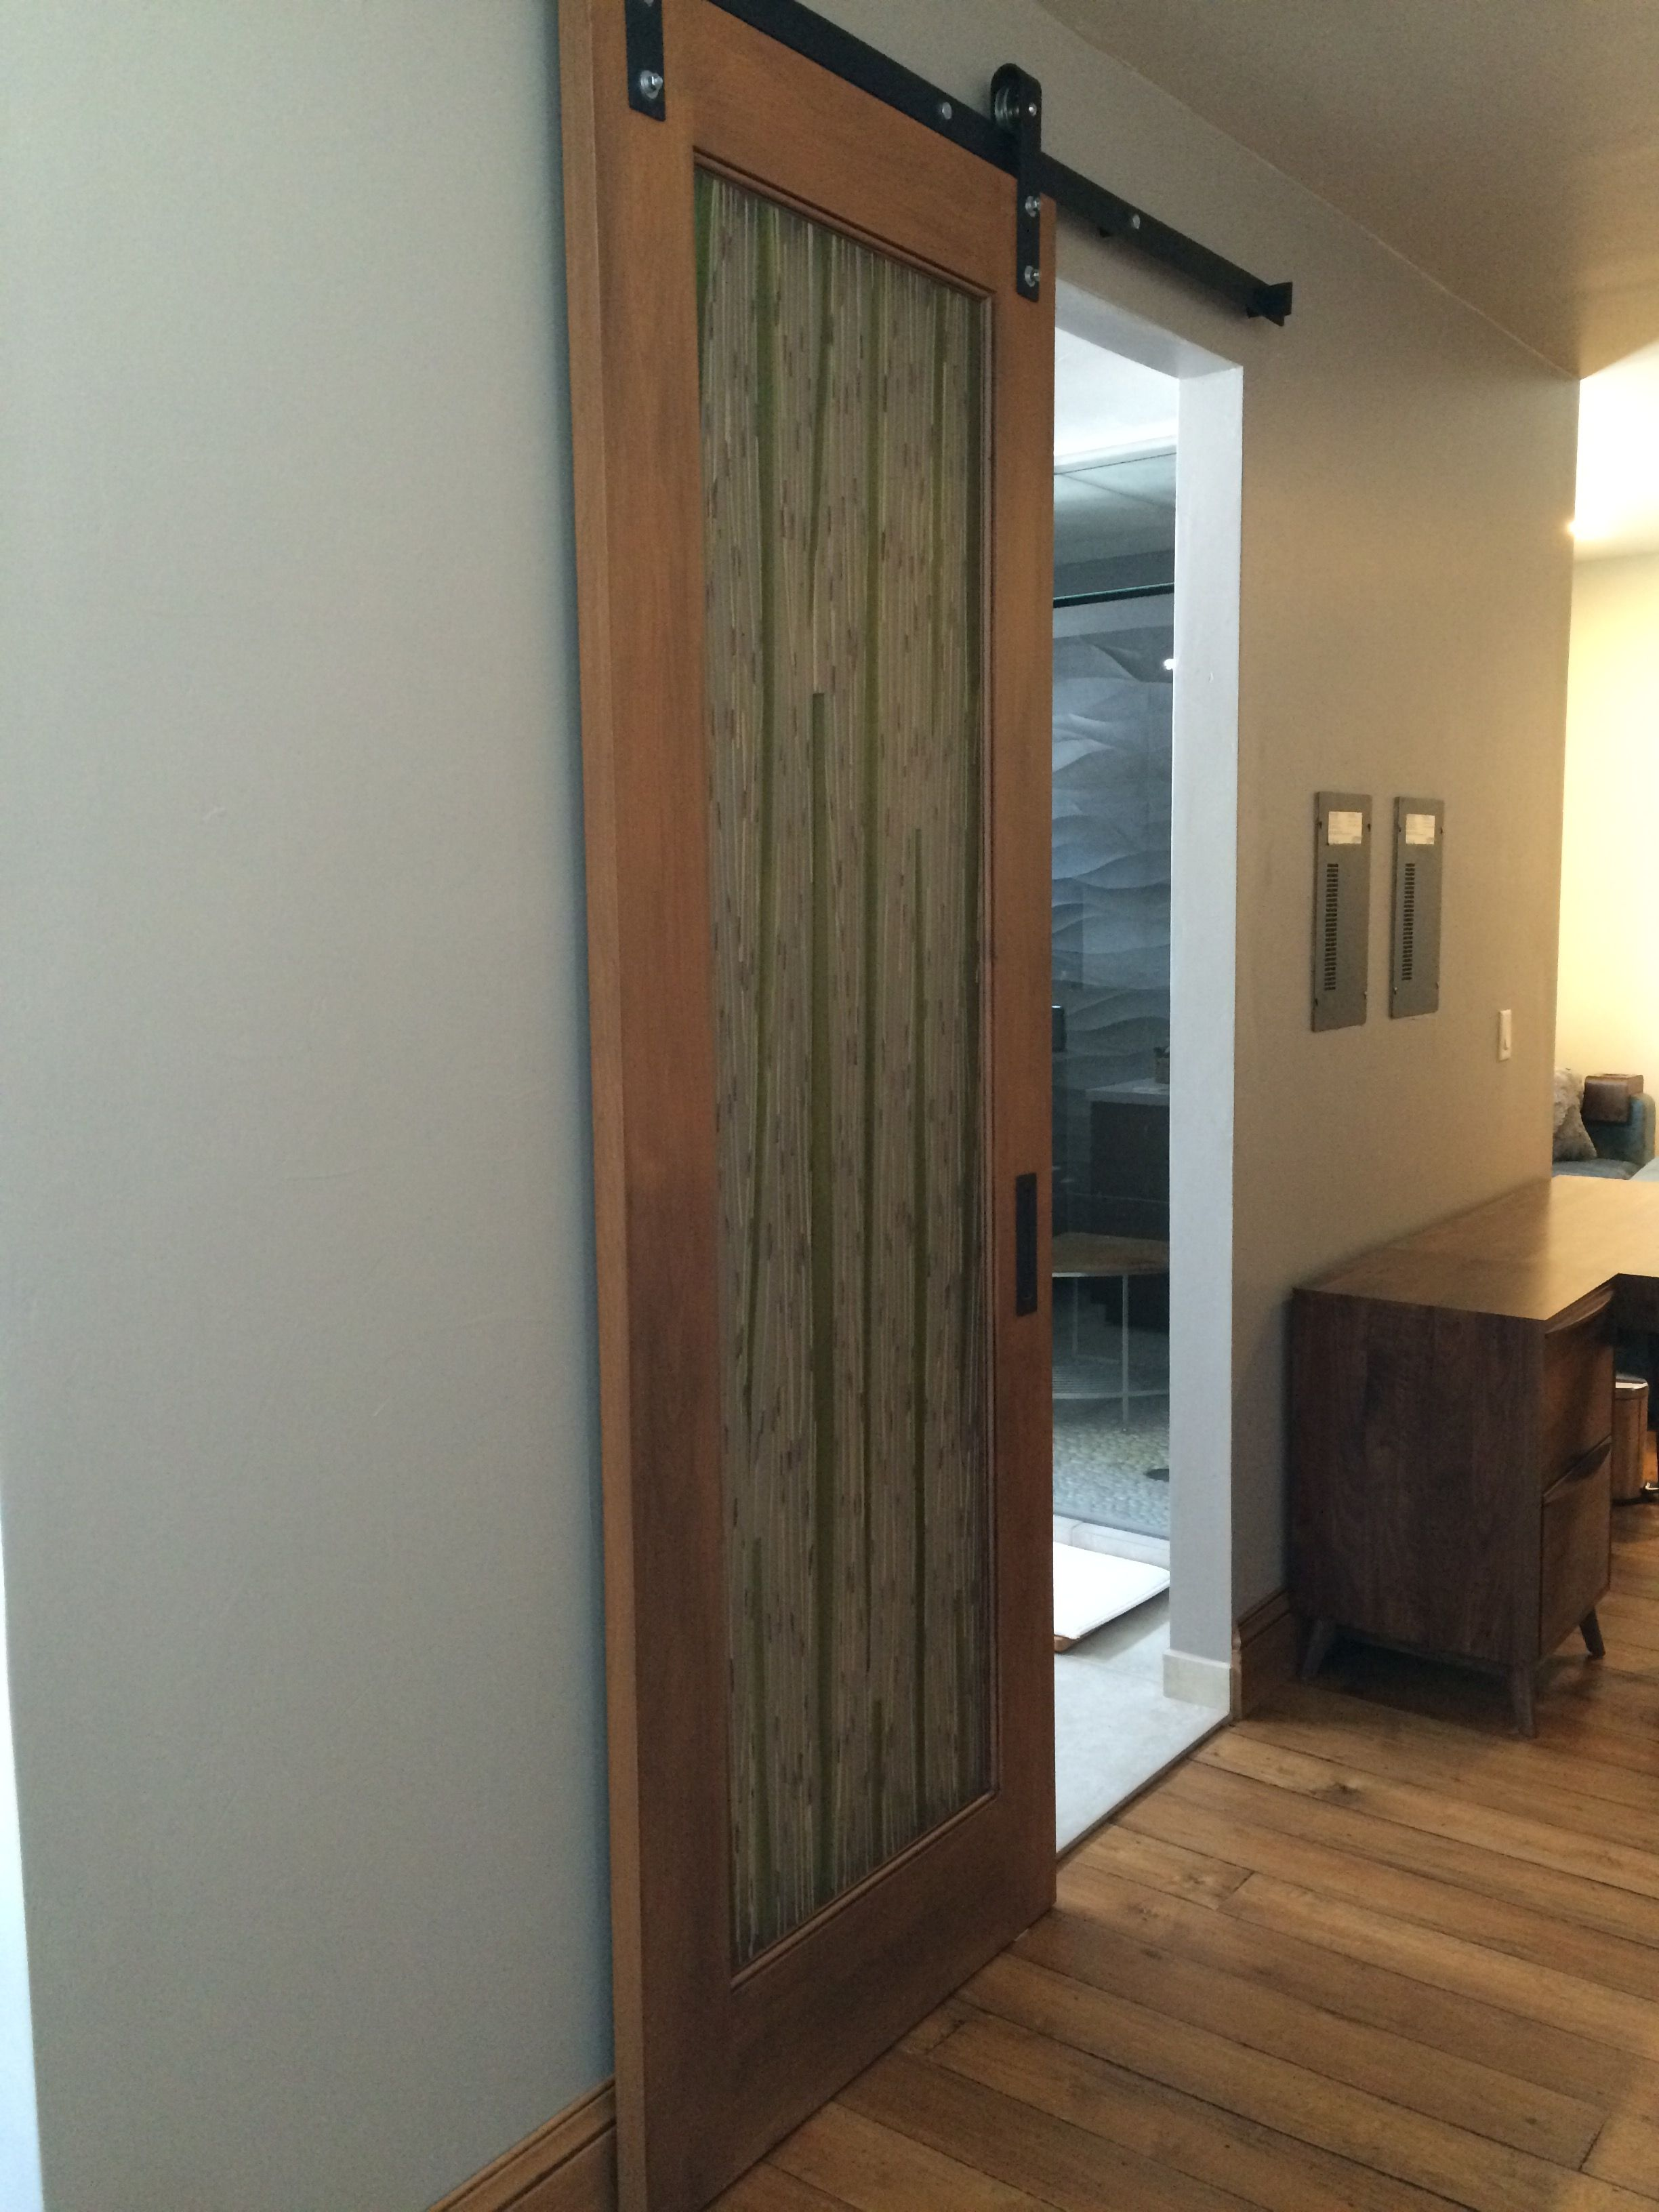 Bedroom Screen Door: Sliding Barn Door, 3-form Bamboo. Arcturus Studio Interior